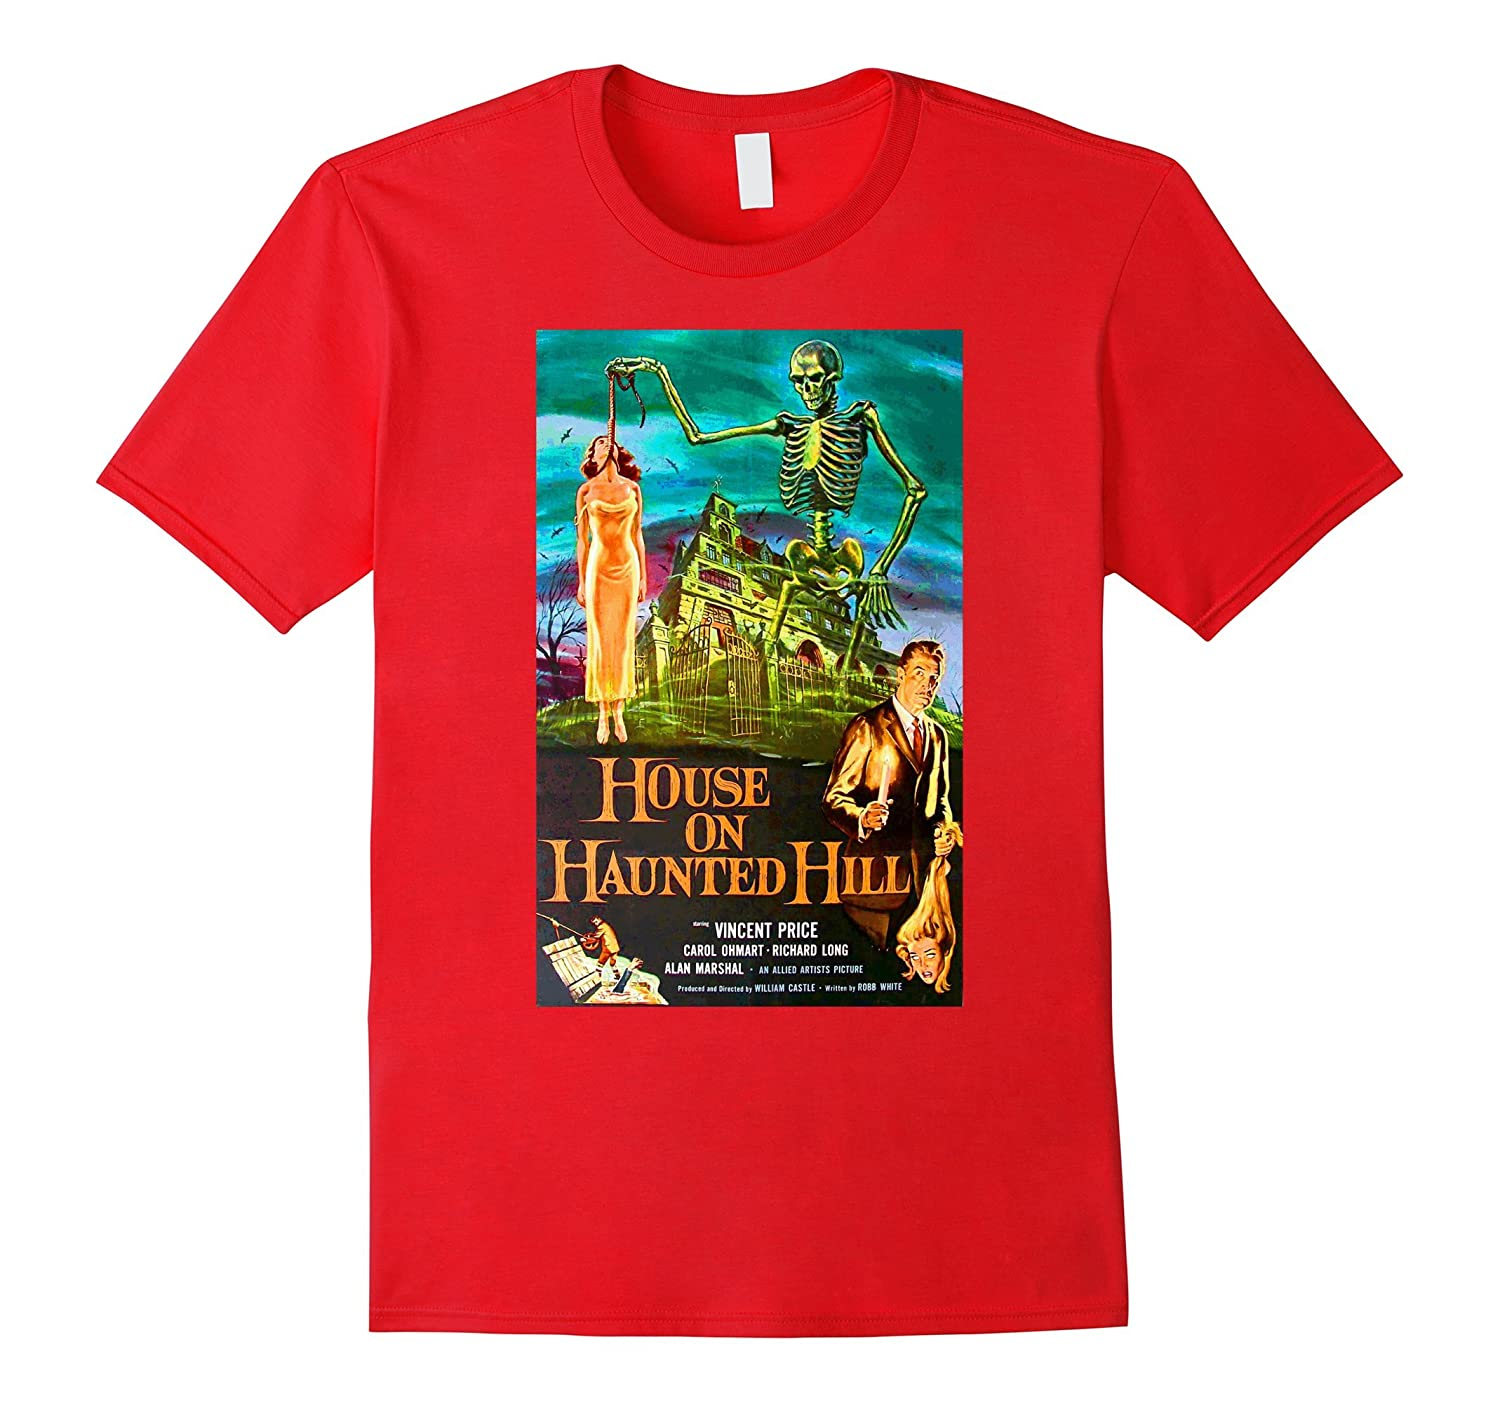 House On Haunted Hill Horror Film T-Shirt Novelty Tee Shirt-FL